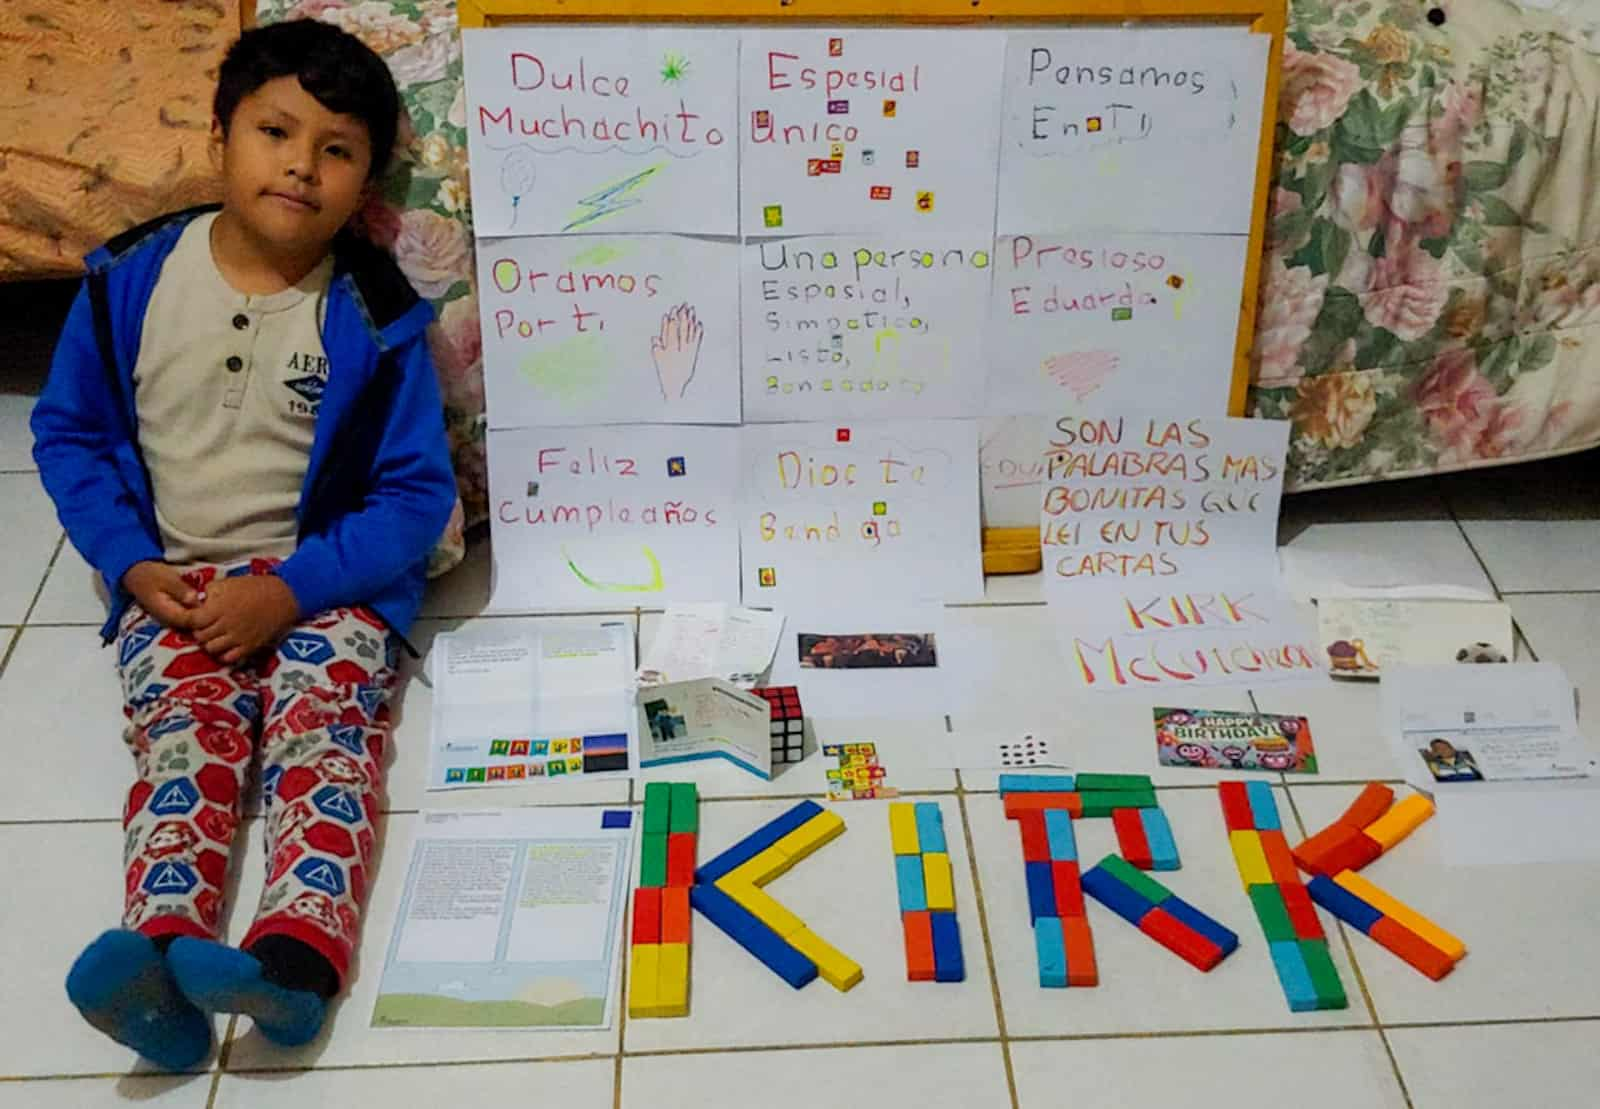 A boy sits next to posters written in Spanish